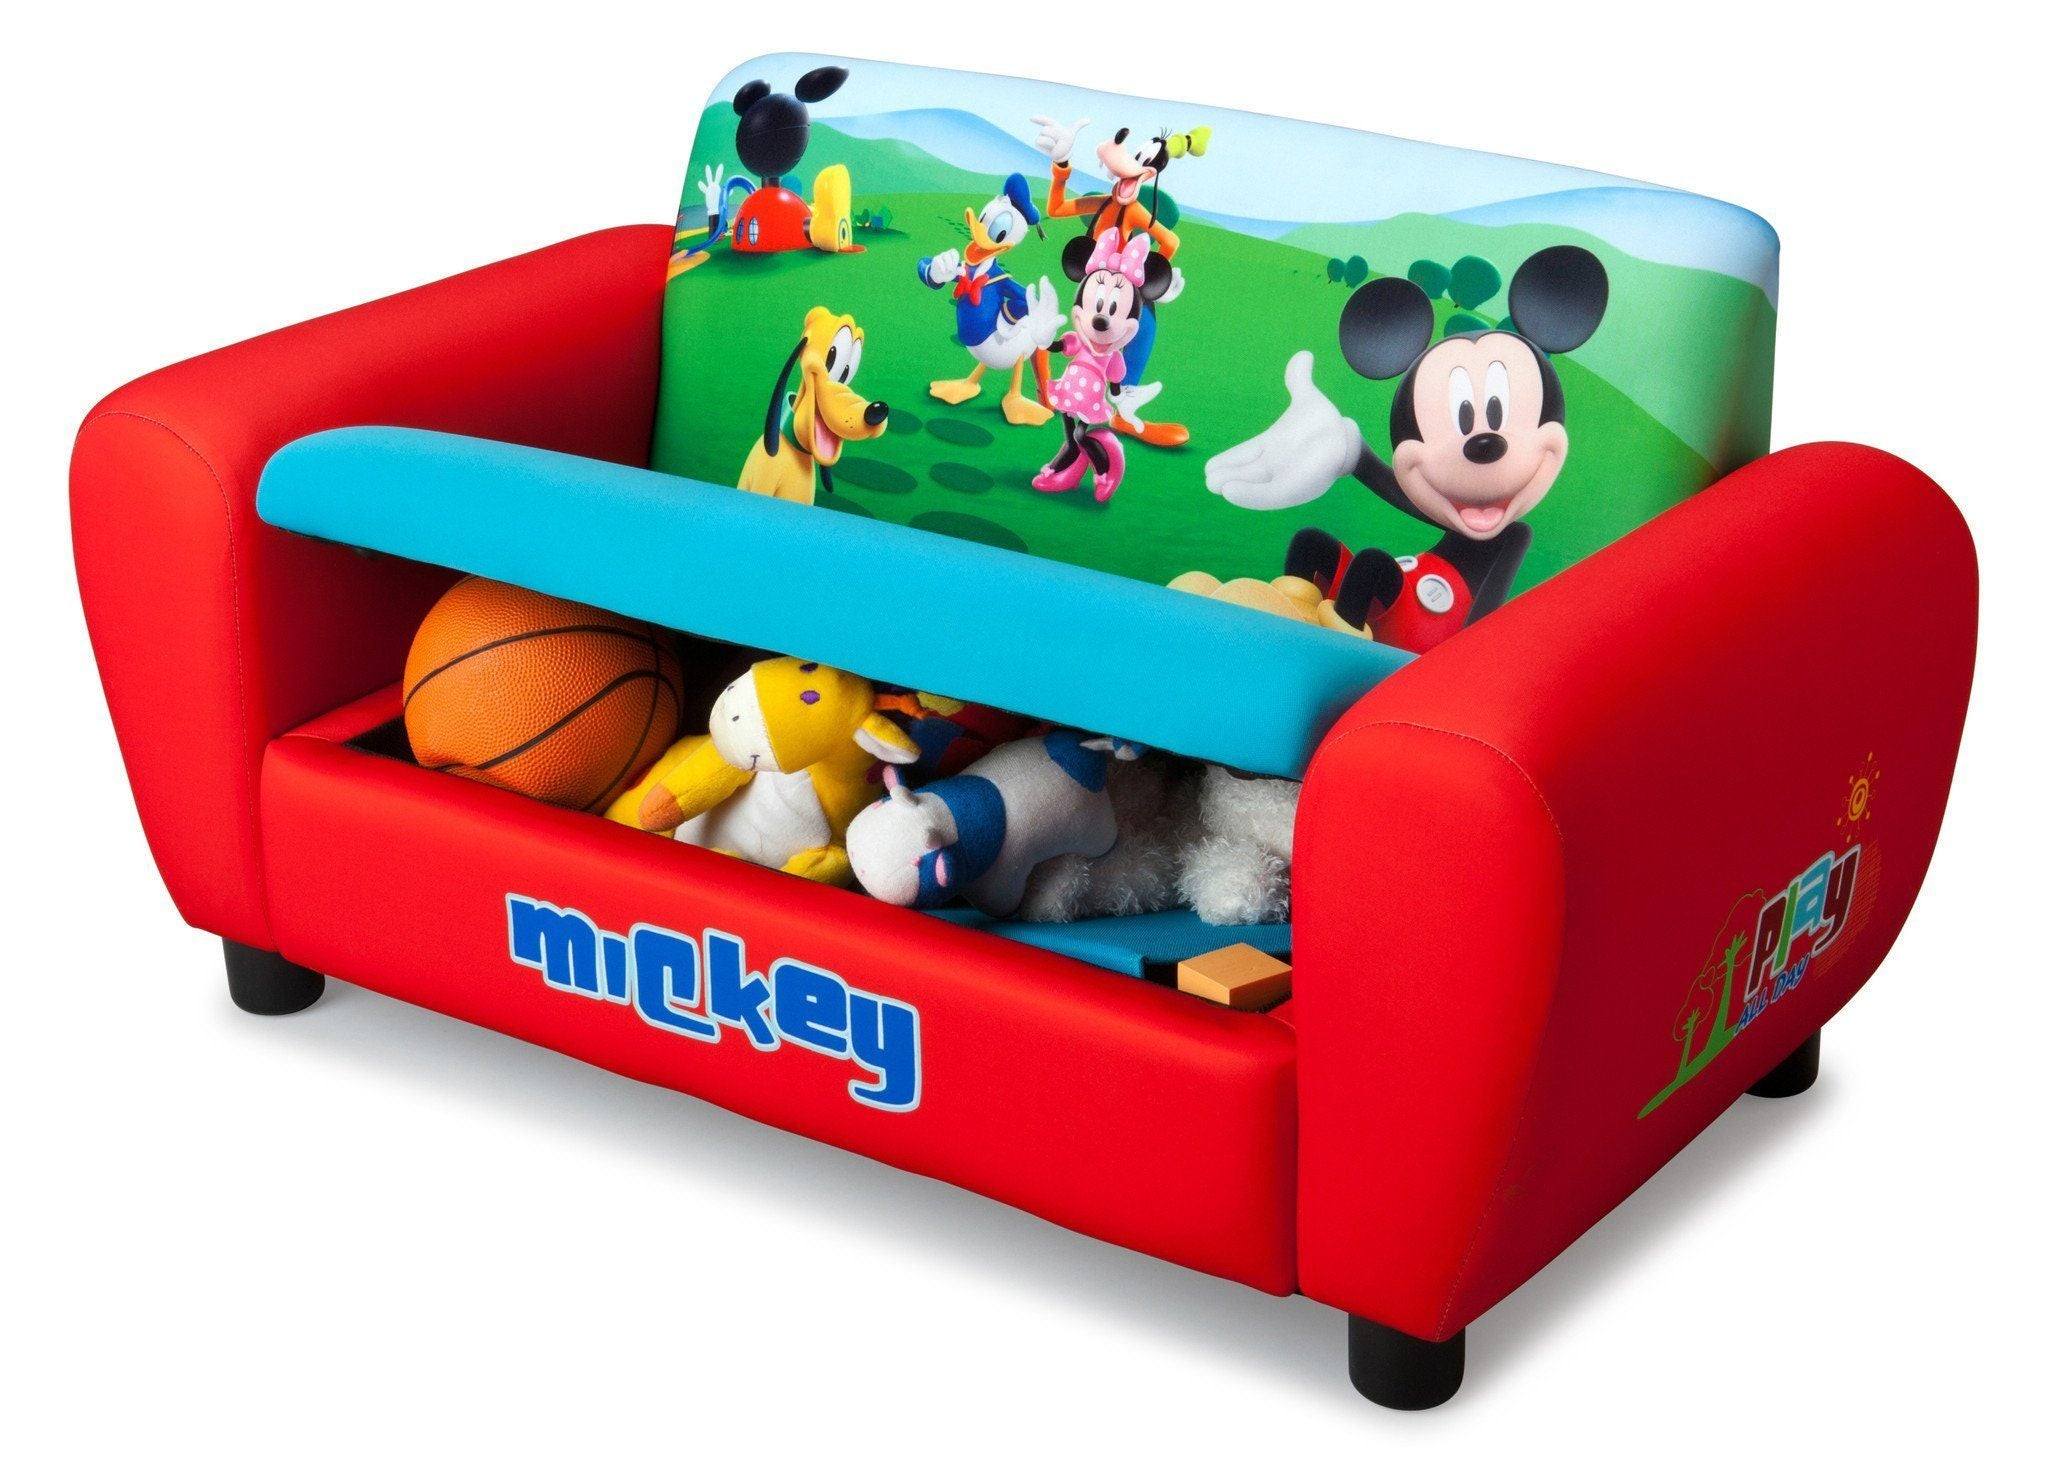 Merveilleux ... Delta Children Mickey Mouse Upholstered Sofa Left Side View With  Storage Option A2a